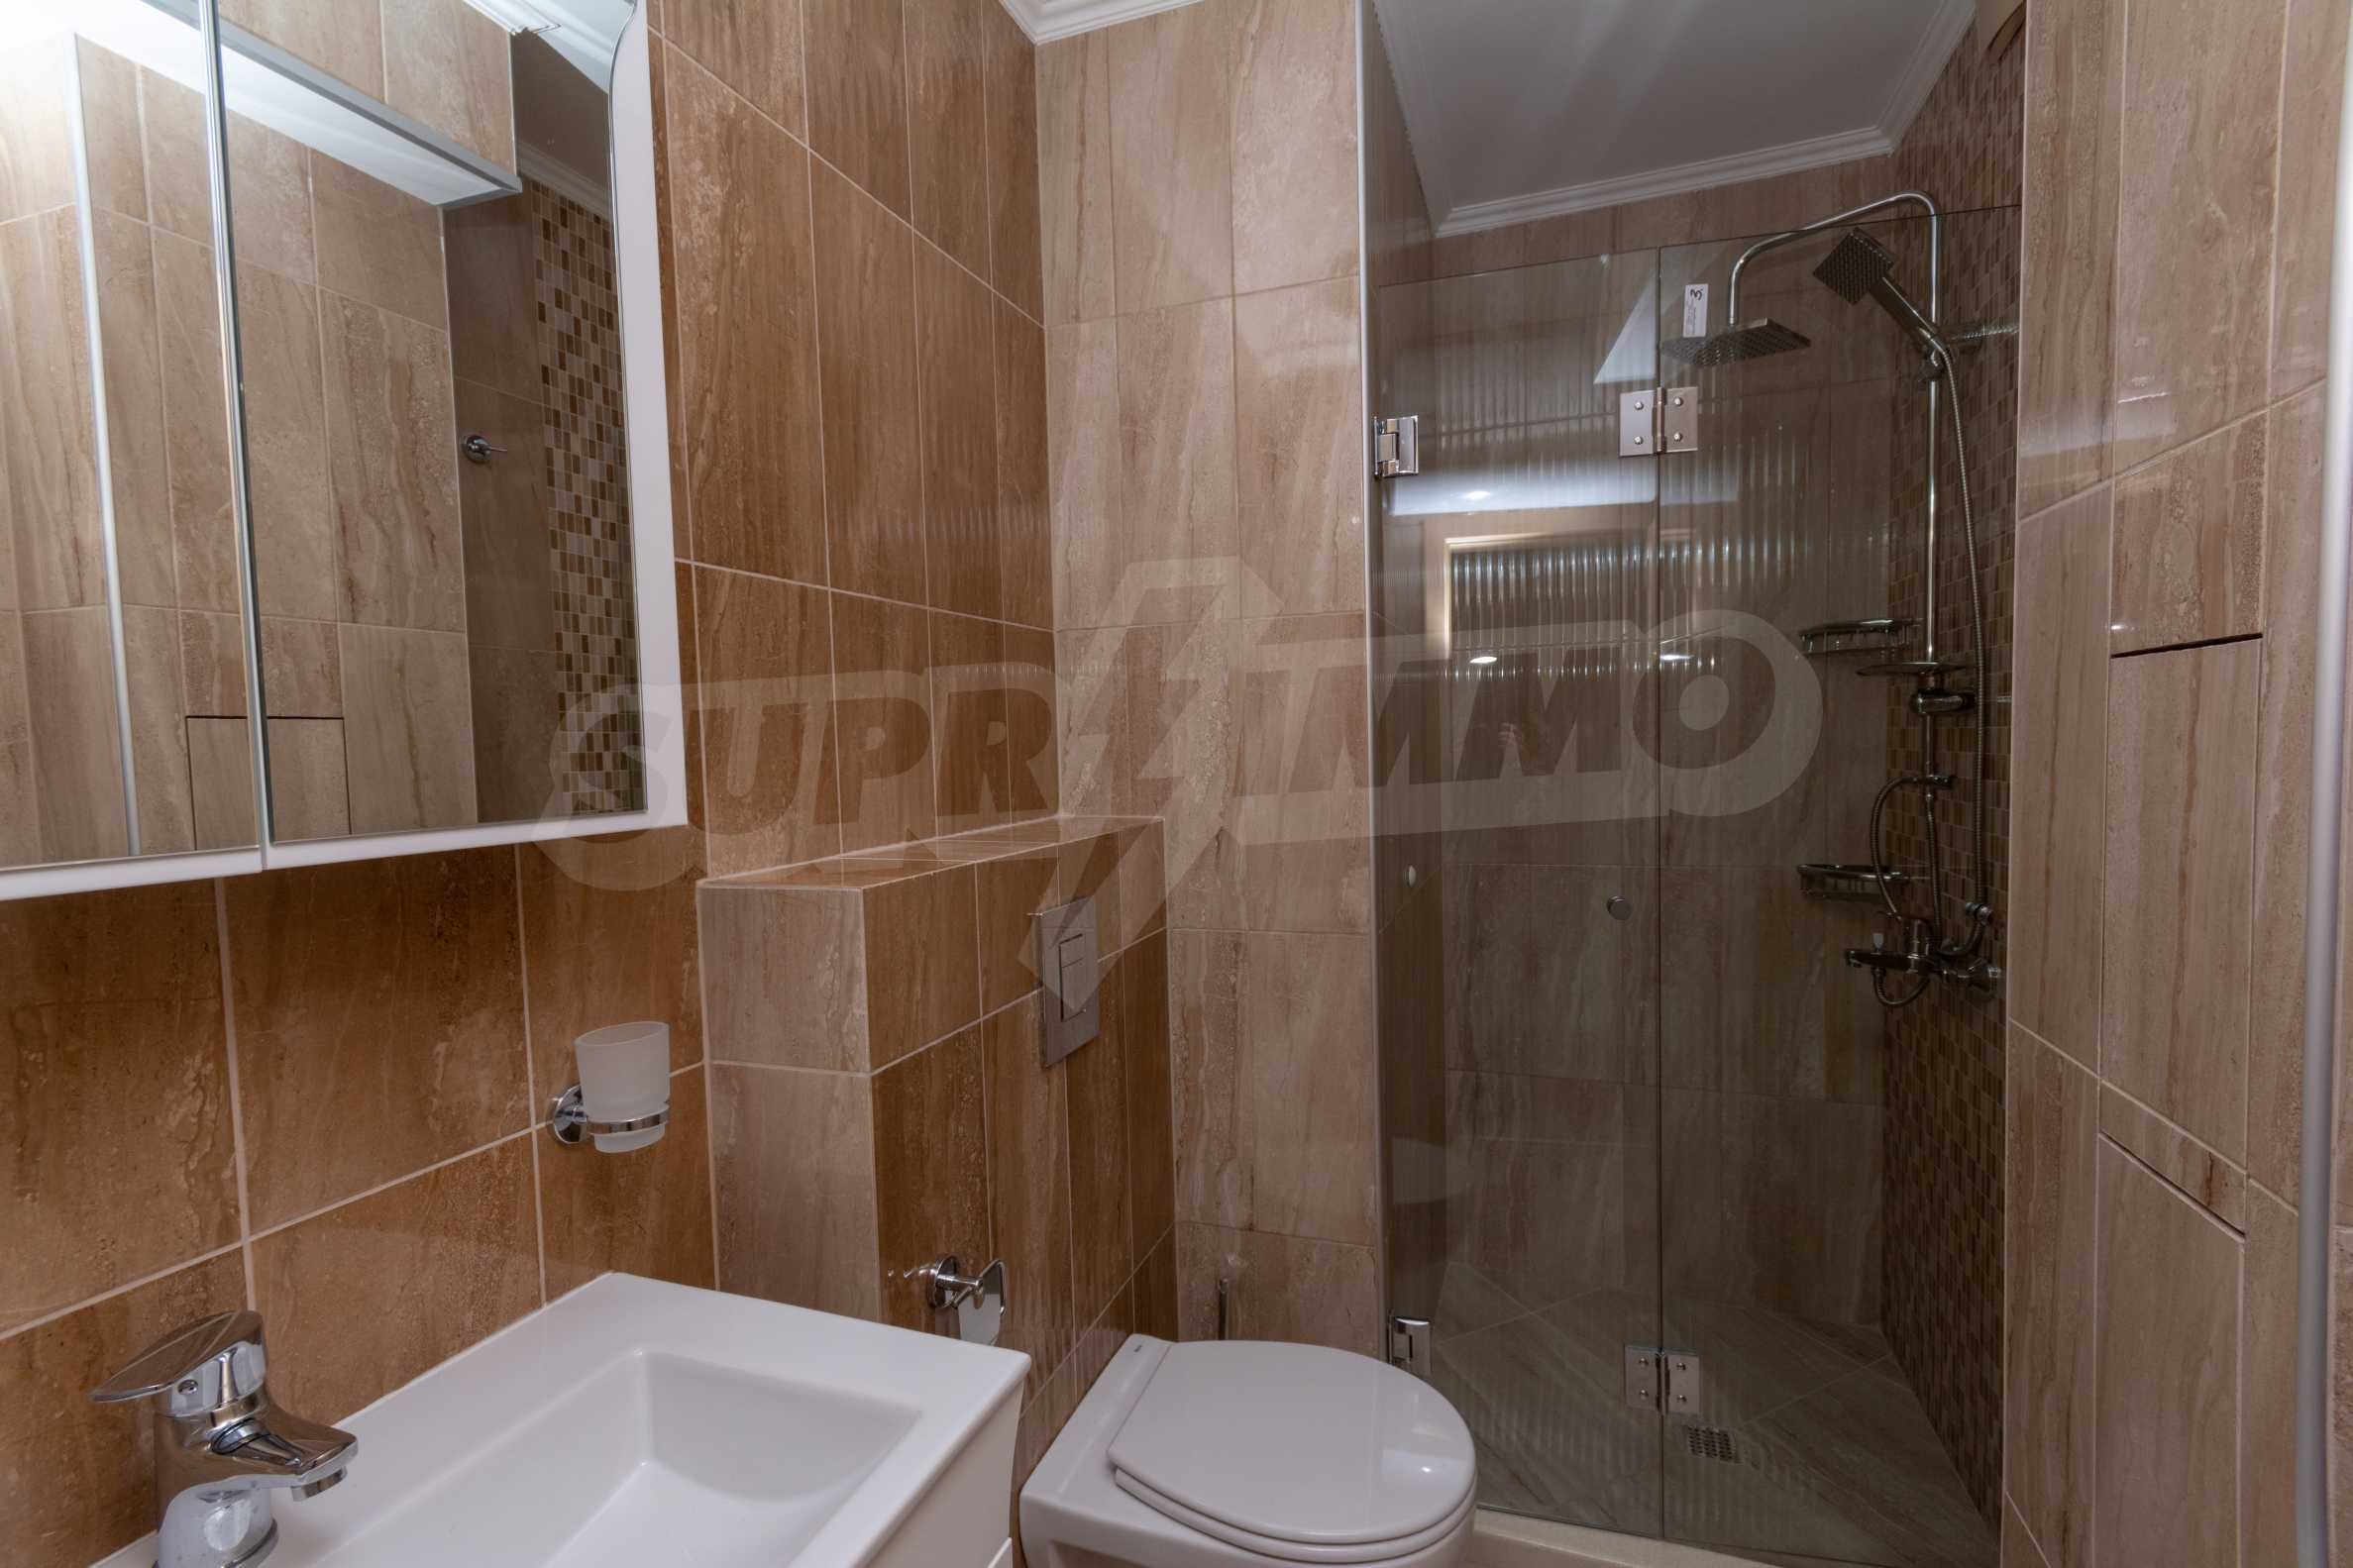 One bedroom apartment in a luxury residential building in a communicative location in Plovdiv 9